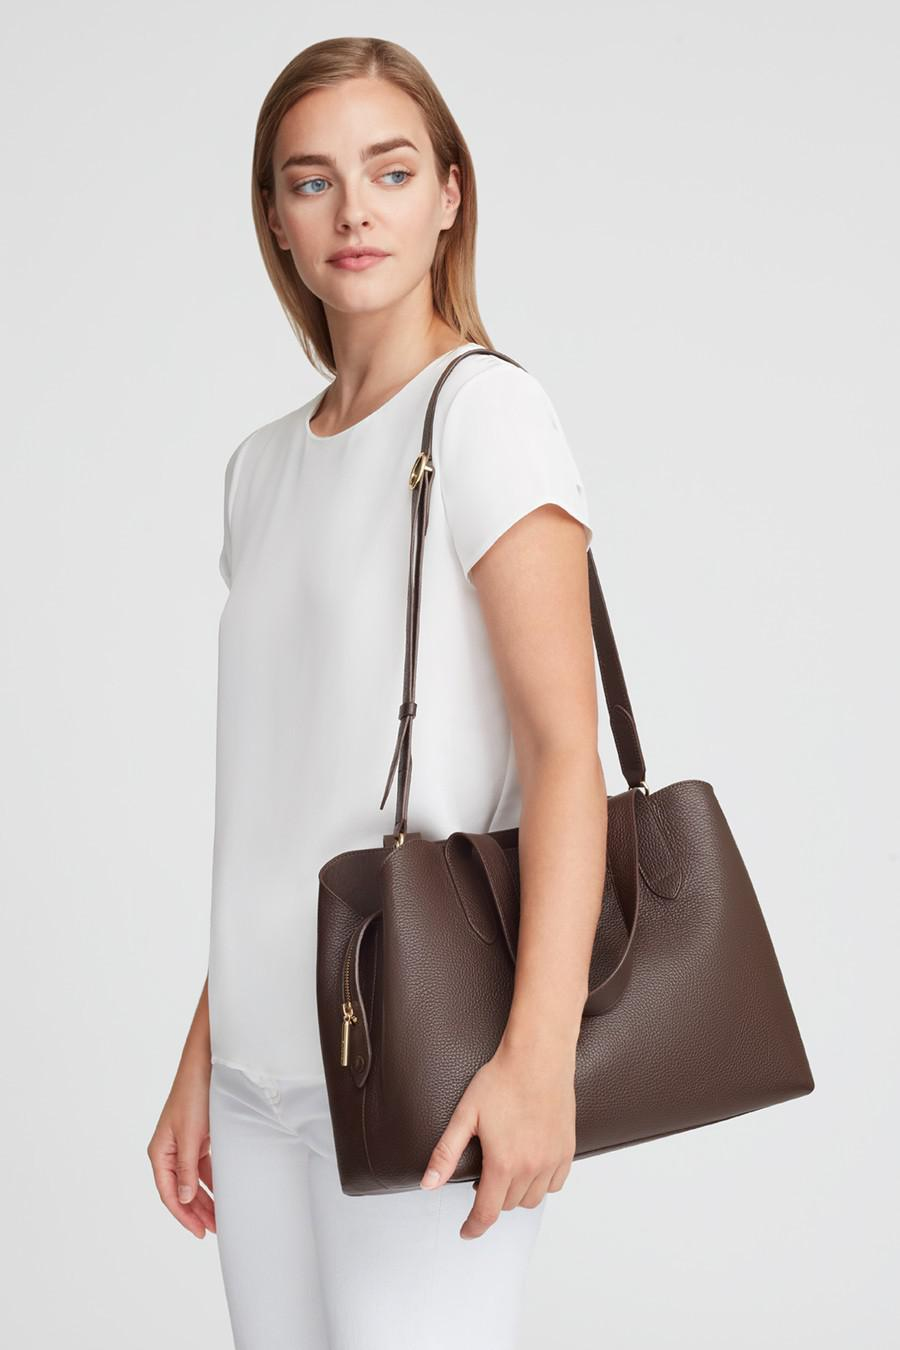 Women's Zippered Satchel Bag in Chocolate | Pebbled Leather by Cuyana 5